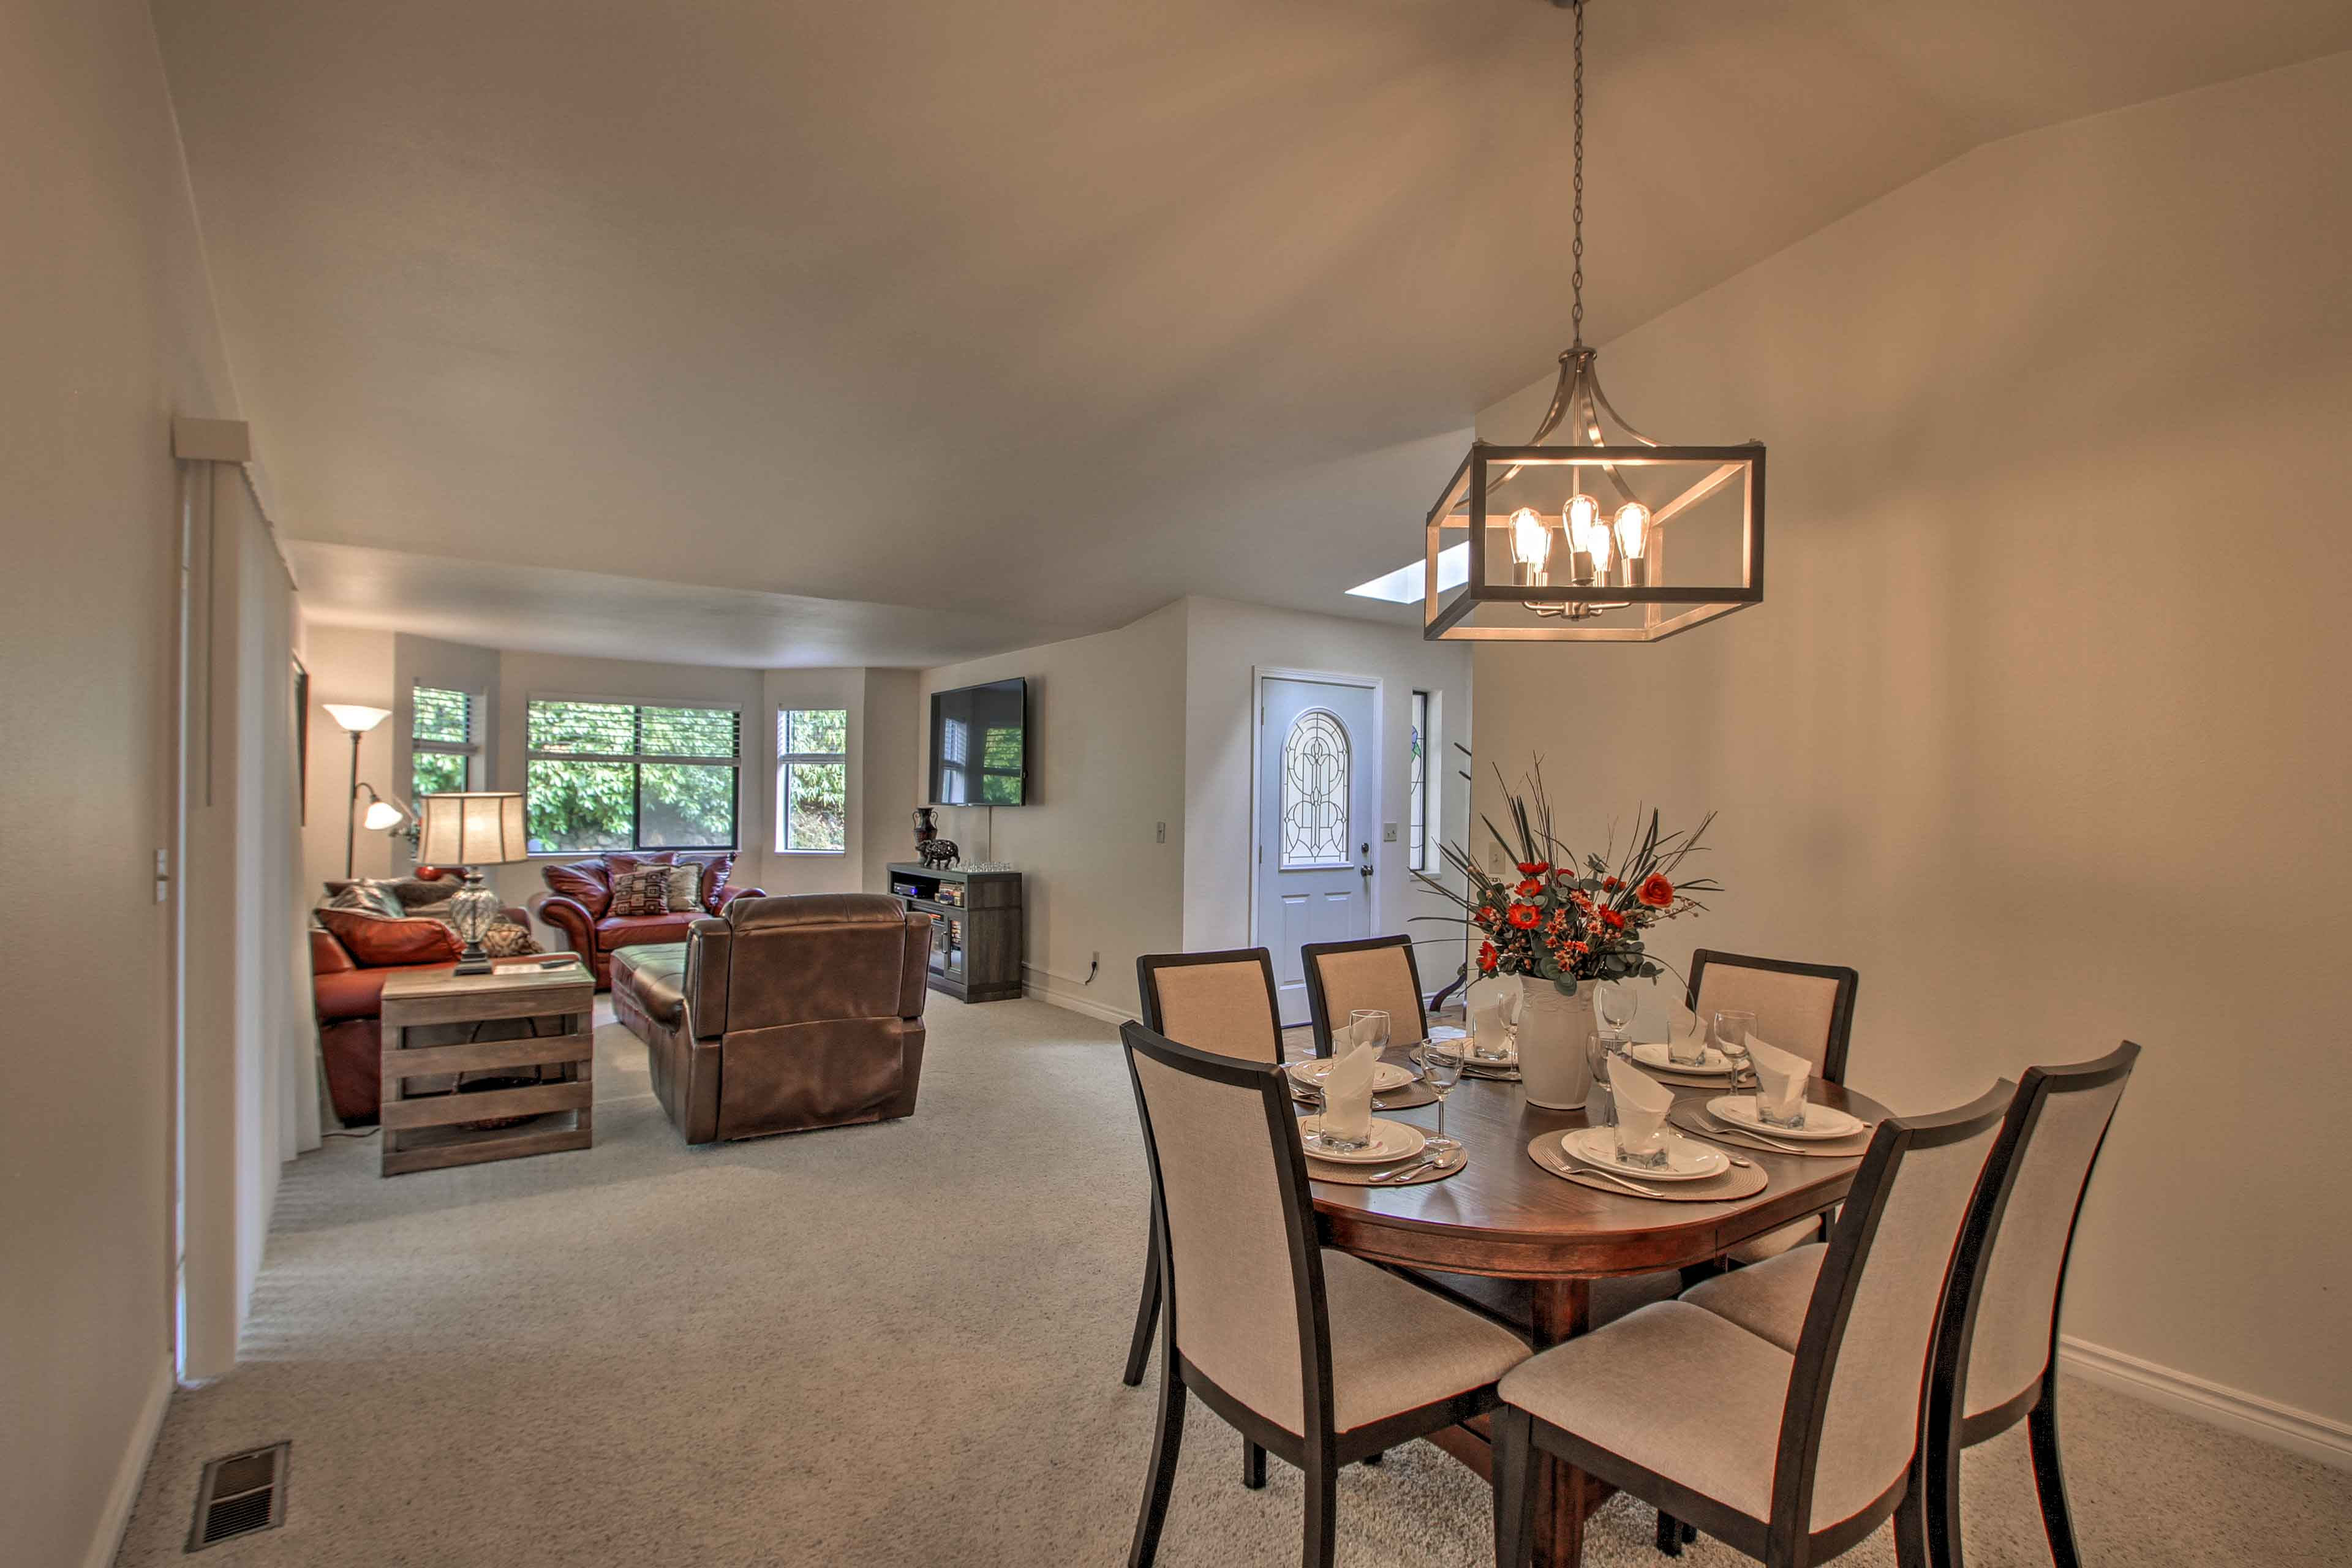 The open layout leads over to this dining area.